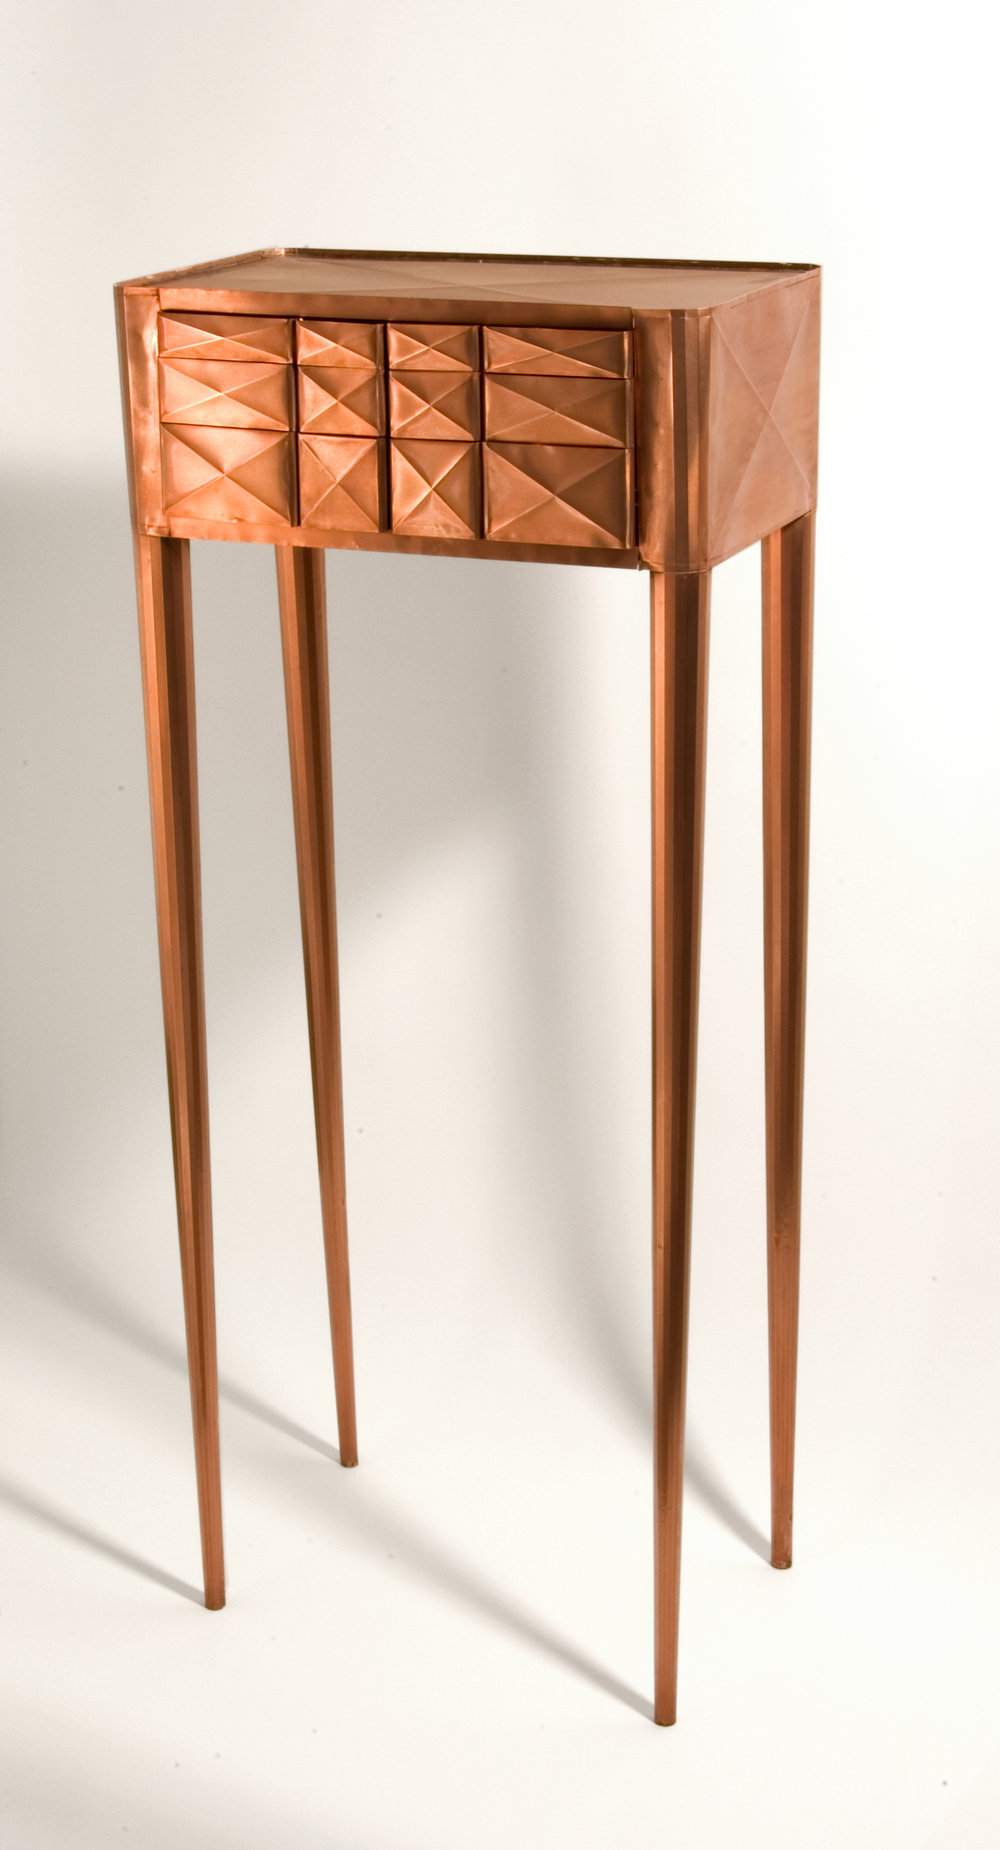 Copper Cabinet-large.jpg